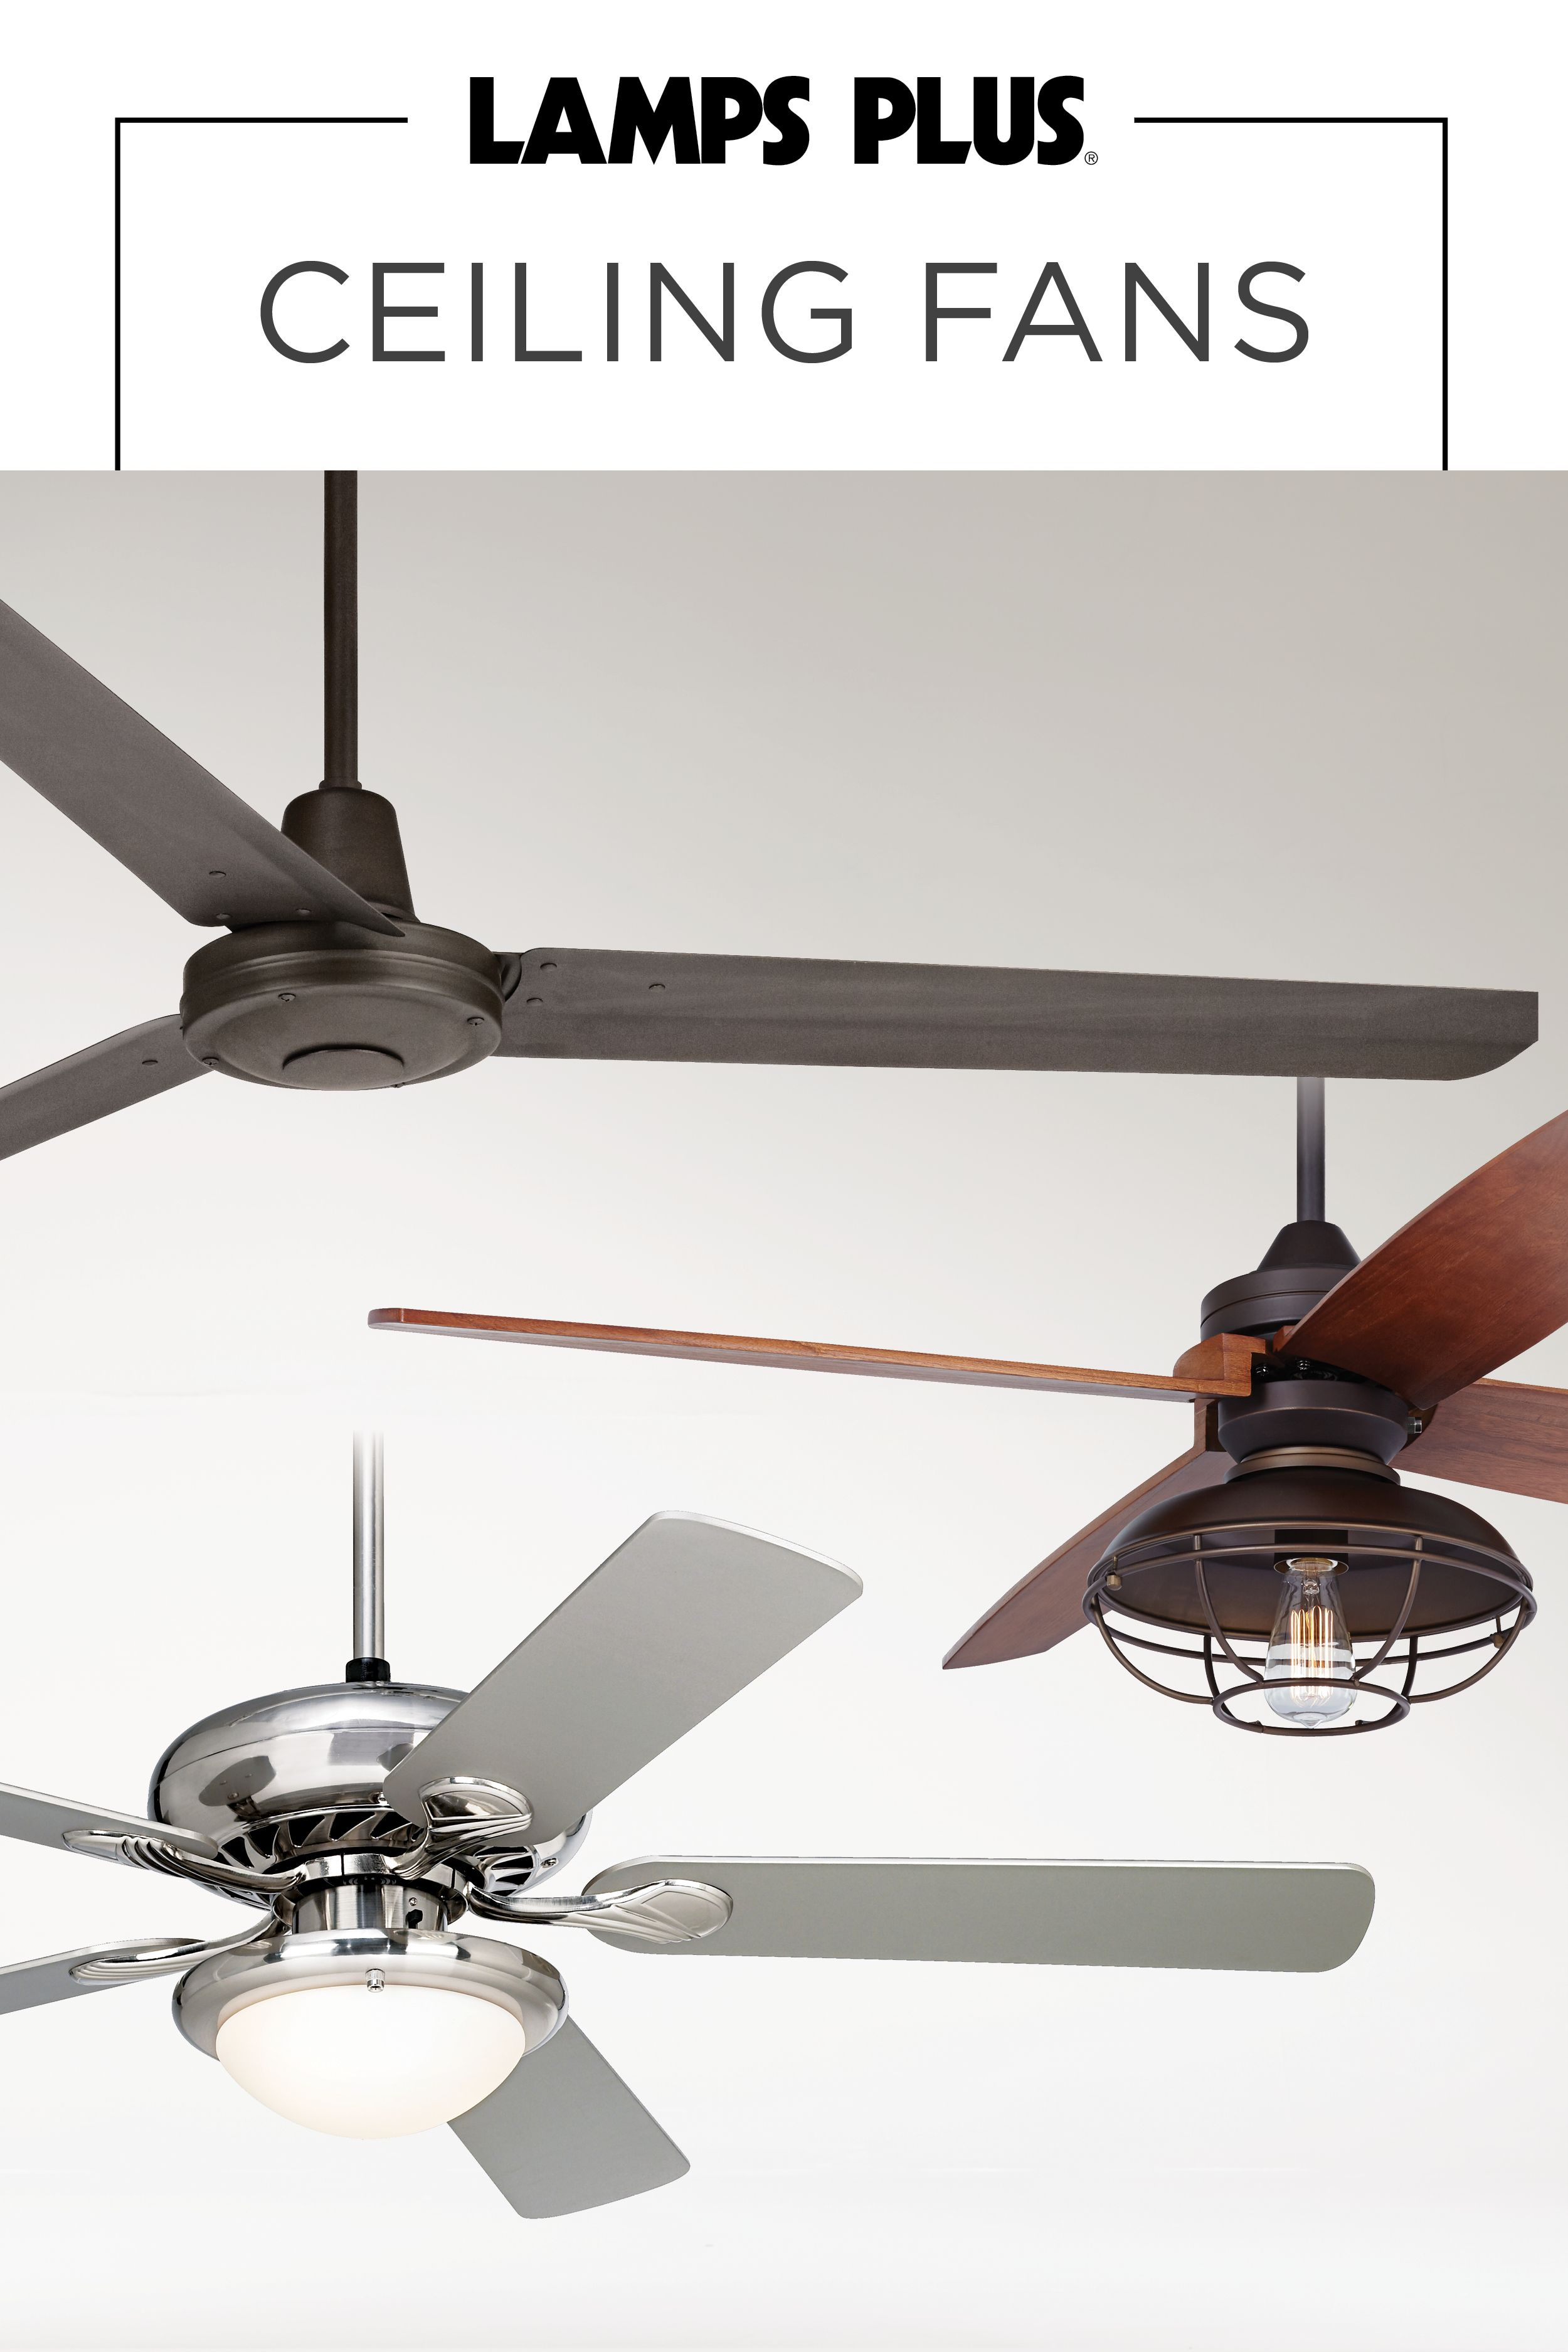 Relite column ceiling fan with wooden blades